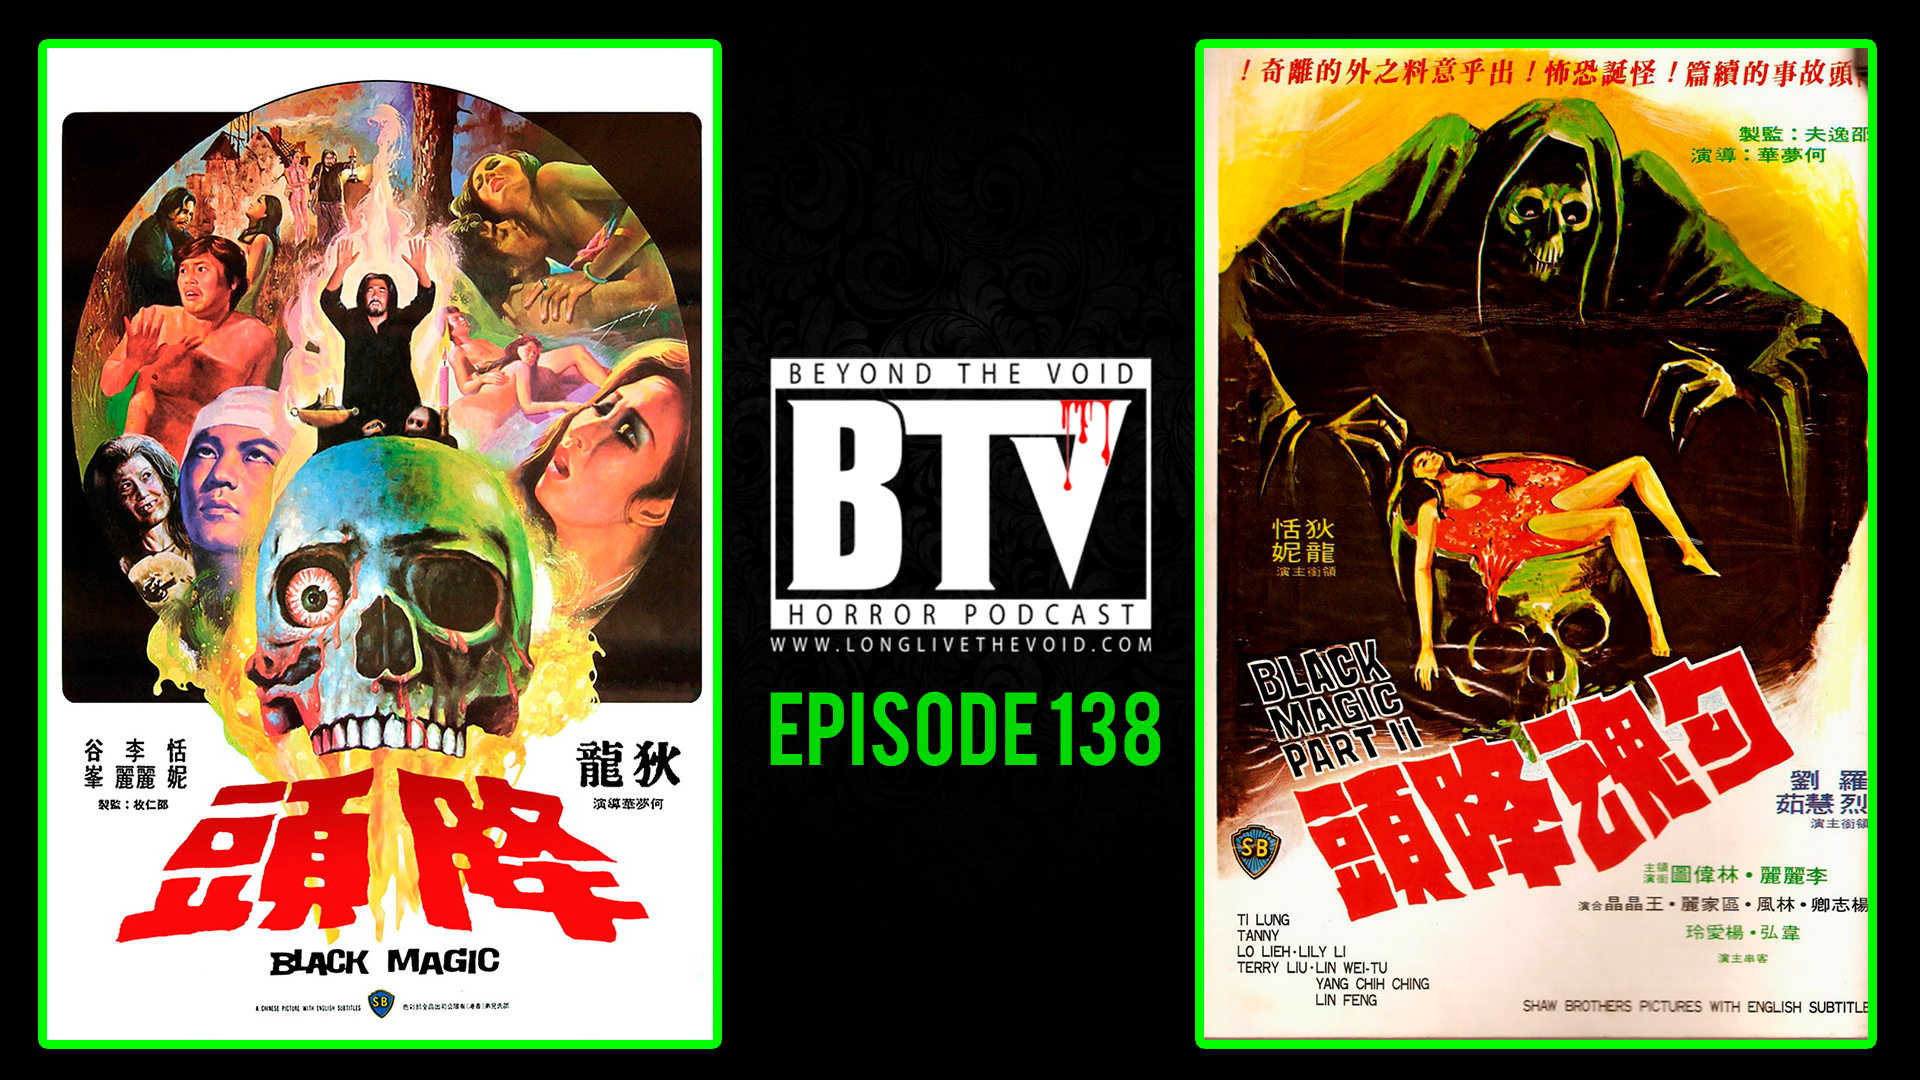 YT-Ep138-Black-Magic-(1975)-&-Black-Magic-2-(1976)-Reviews.jpg